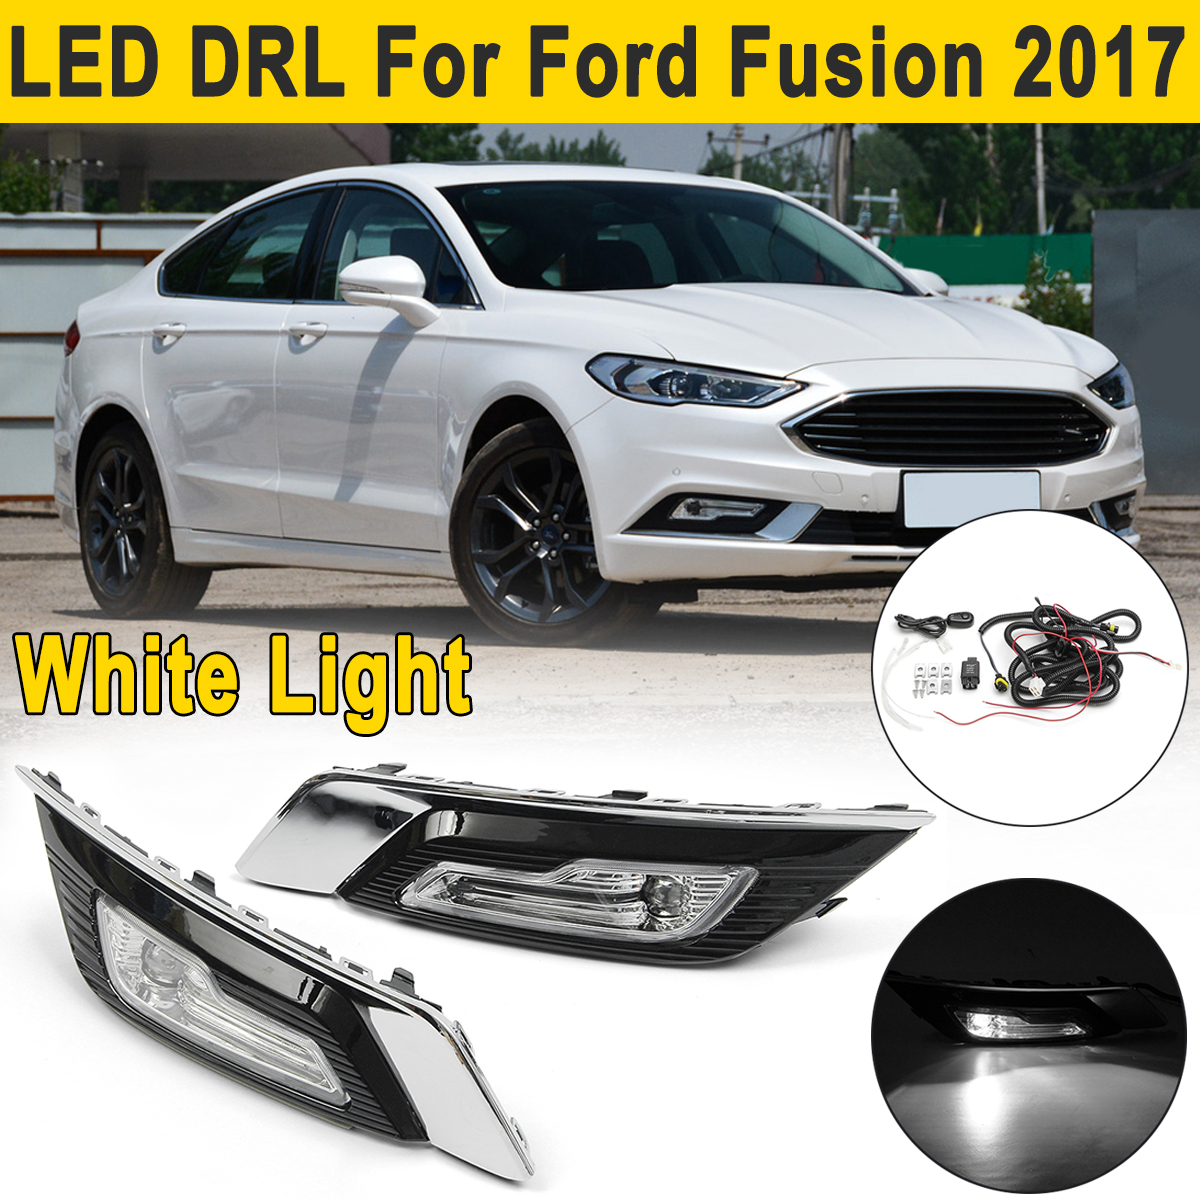 2x for Ford for Fusion 2017+ up LED DRL Driving Lights Turn Signal Light Fog Lamp Daytime Running Light Daylight with Wire eosuns led drl daylights daytime running light with yellow turn signal fog lamp for ford mondeo 2010 12 wire module controller